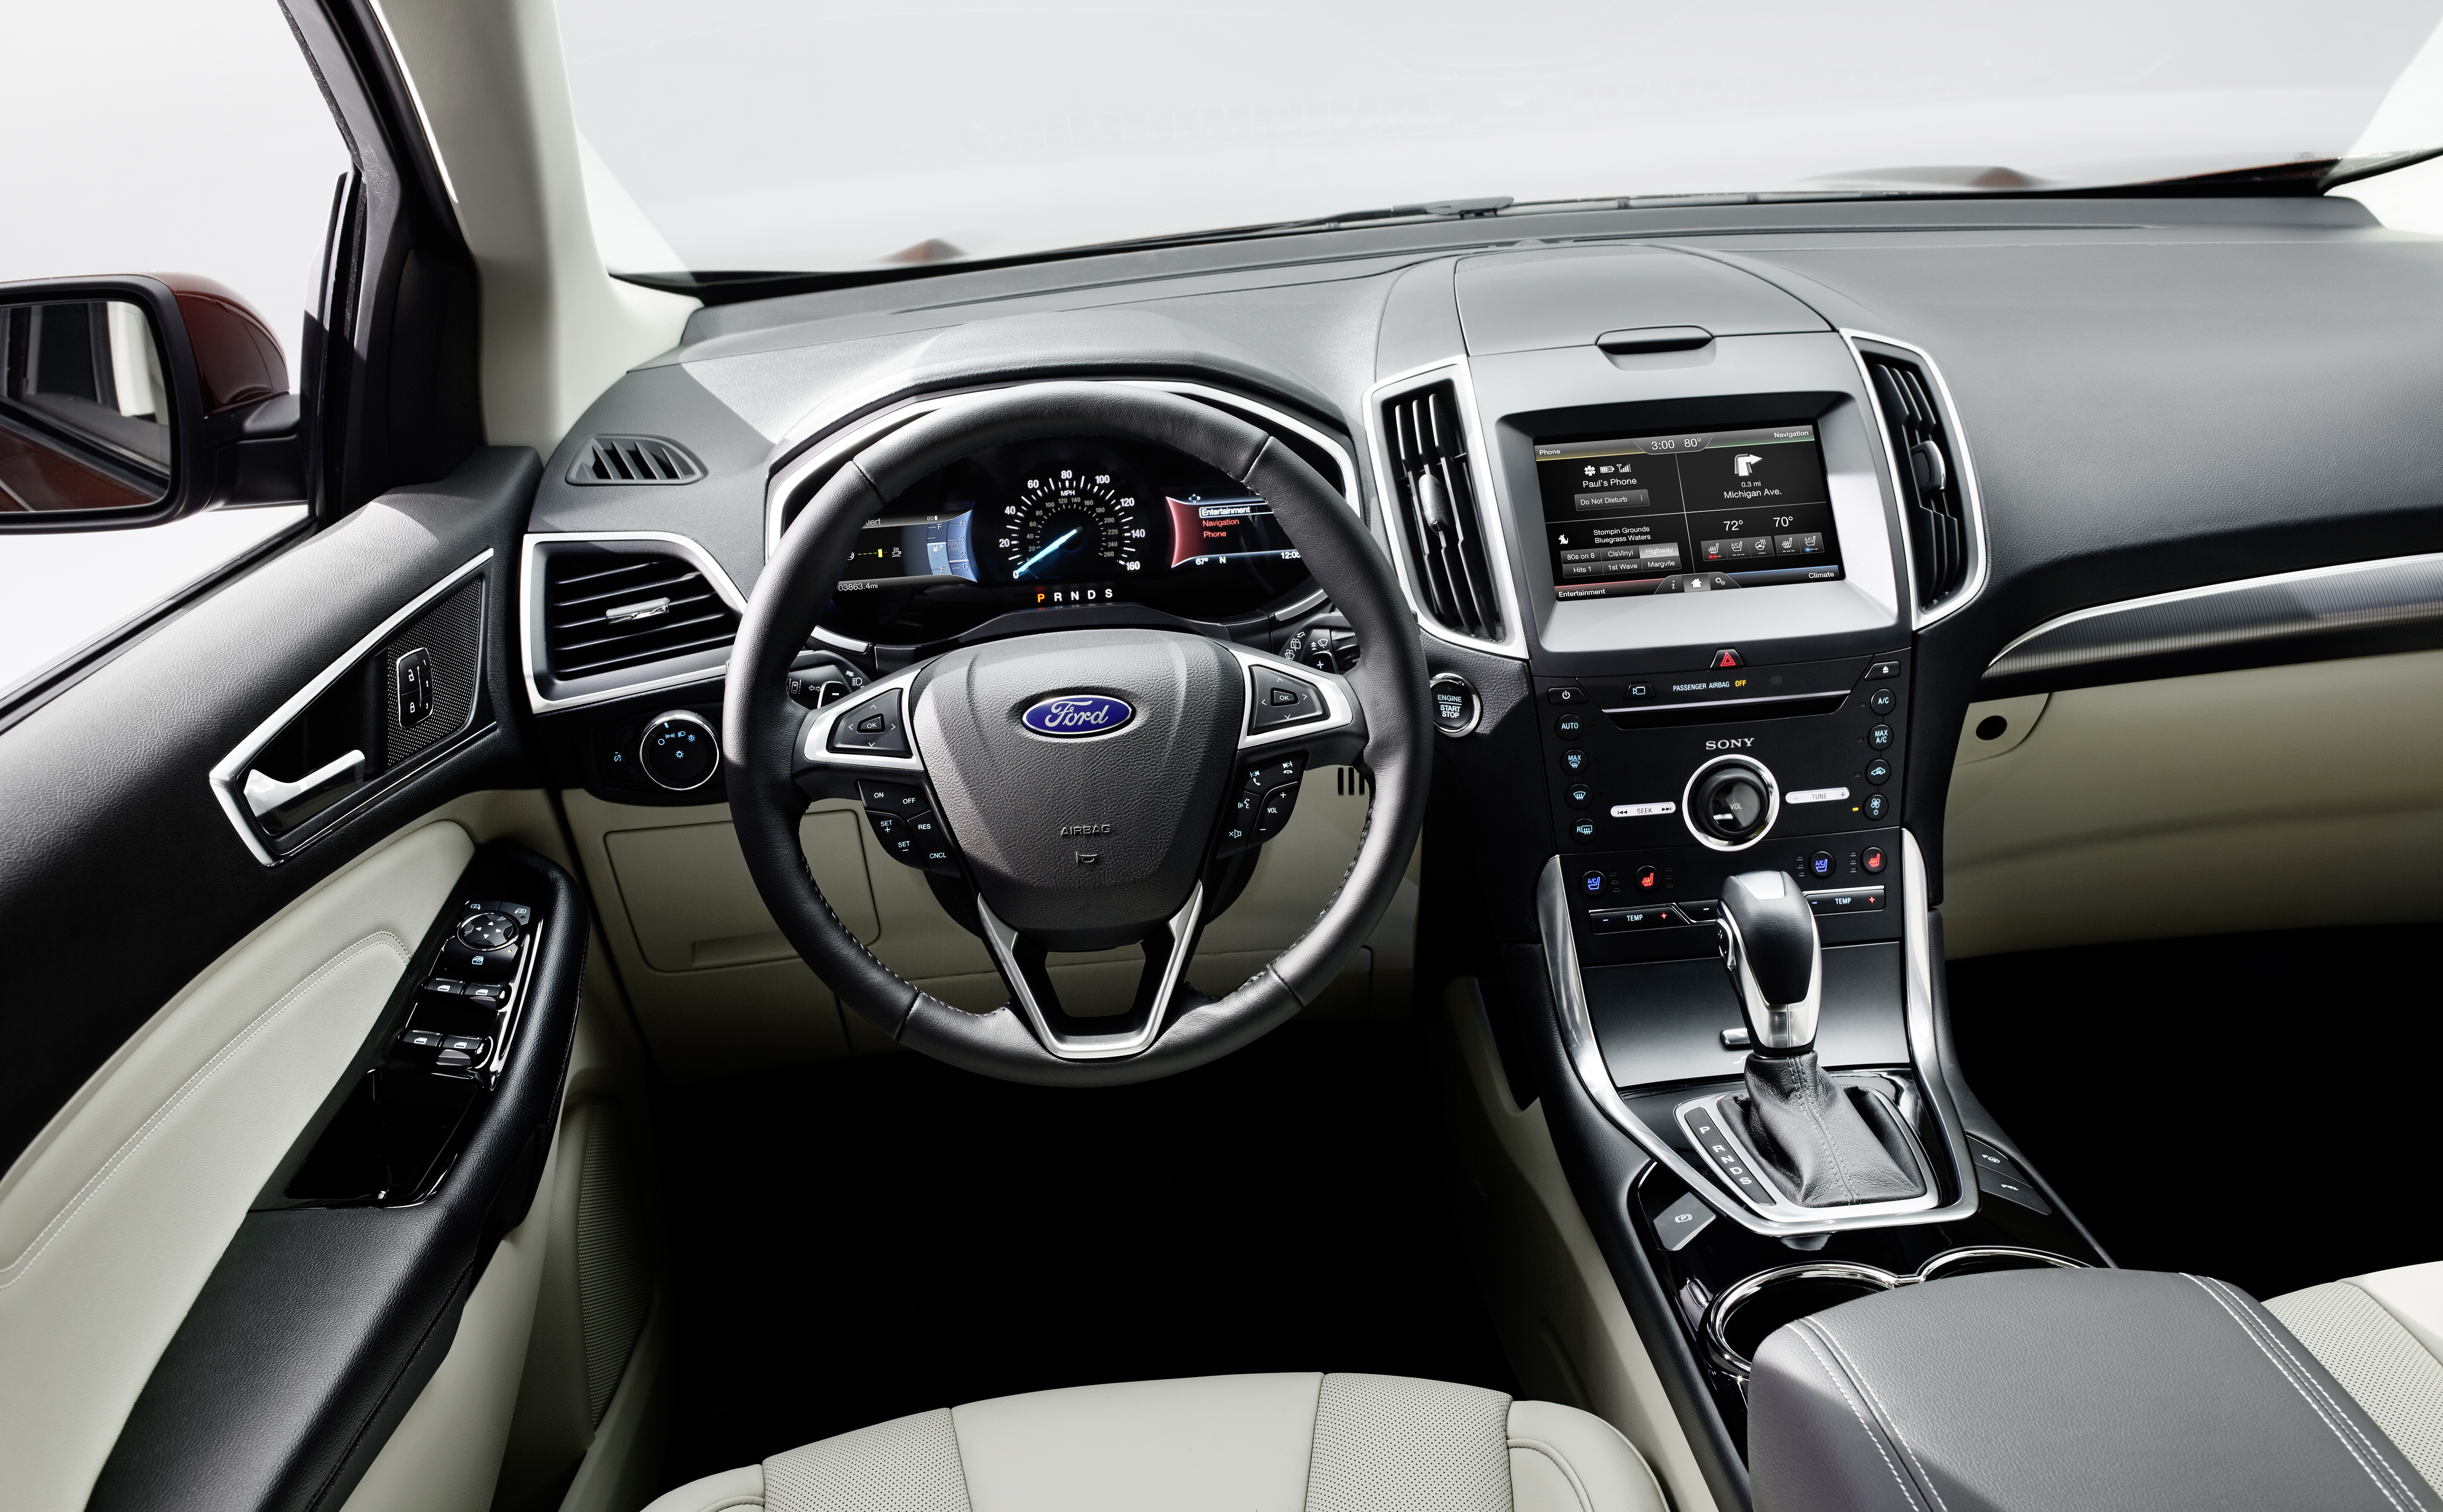 2015 ford edge 2 0 ecoboost twin scroll turbo engine detailed autoevolution. Black Bedroom Furniture Sets. Home Design Ideas